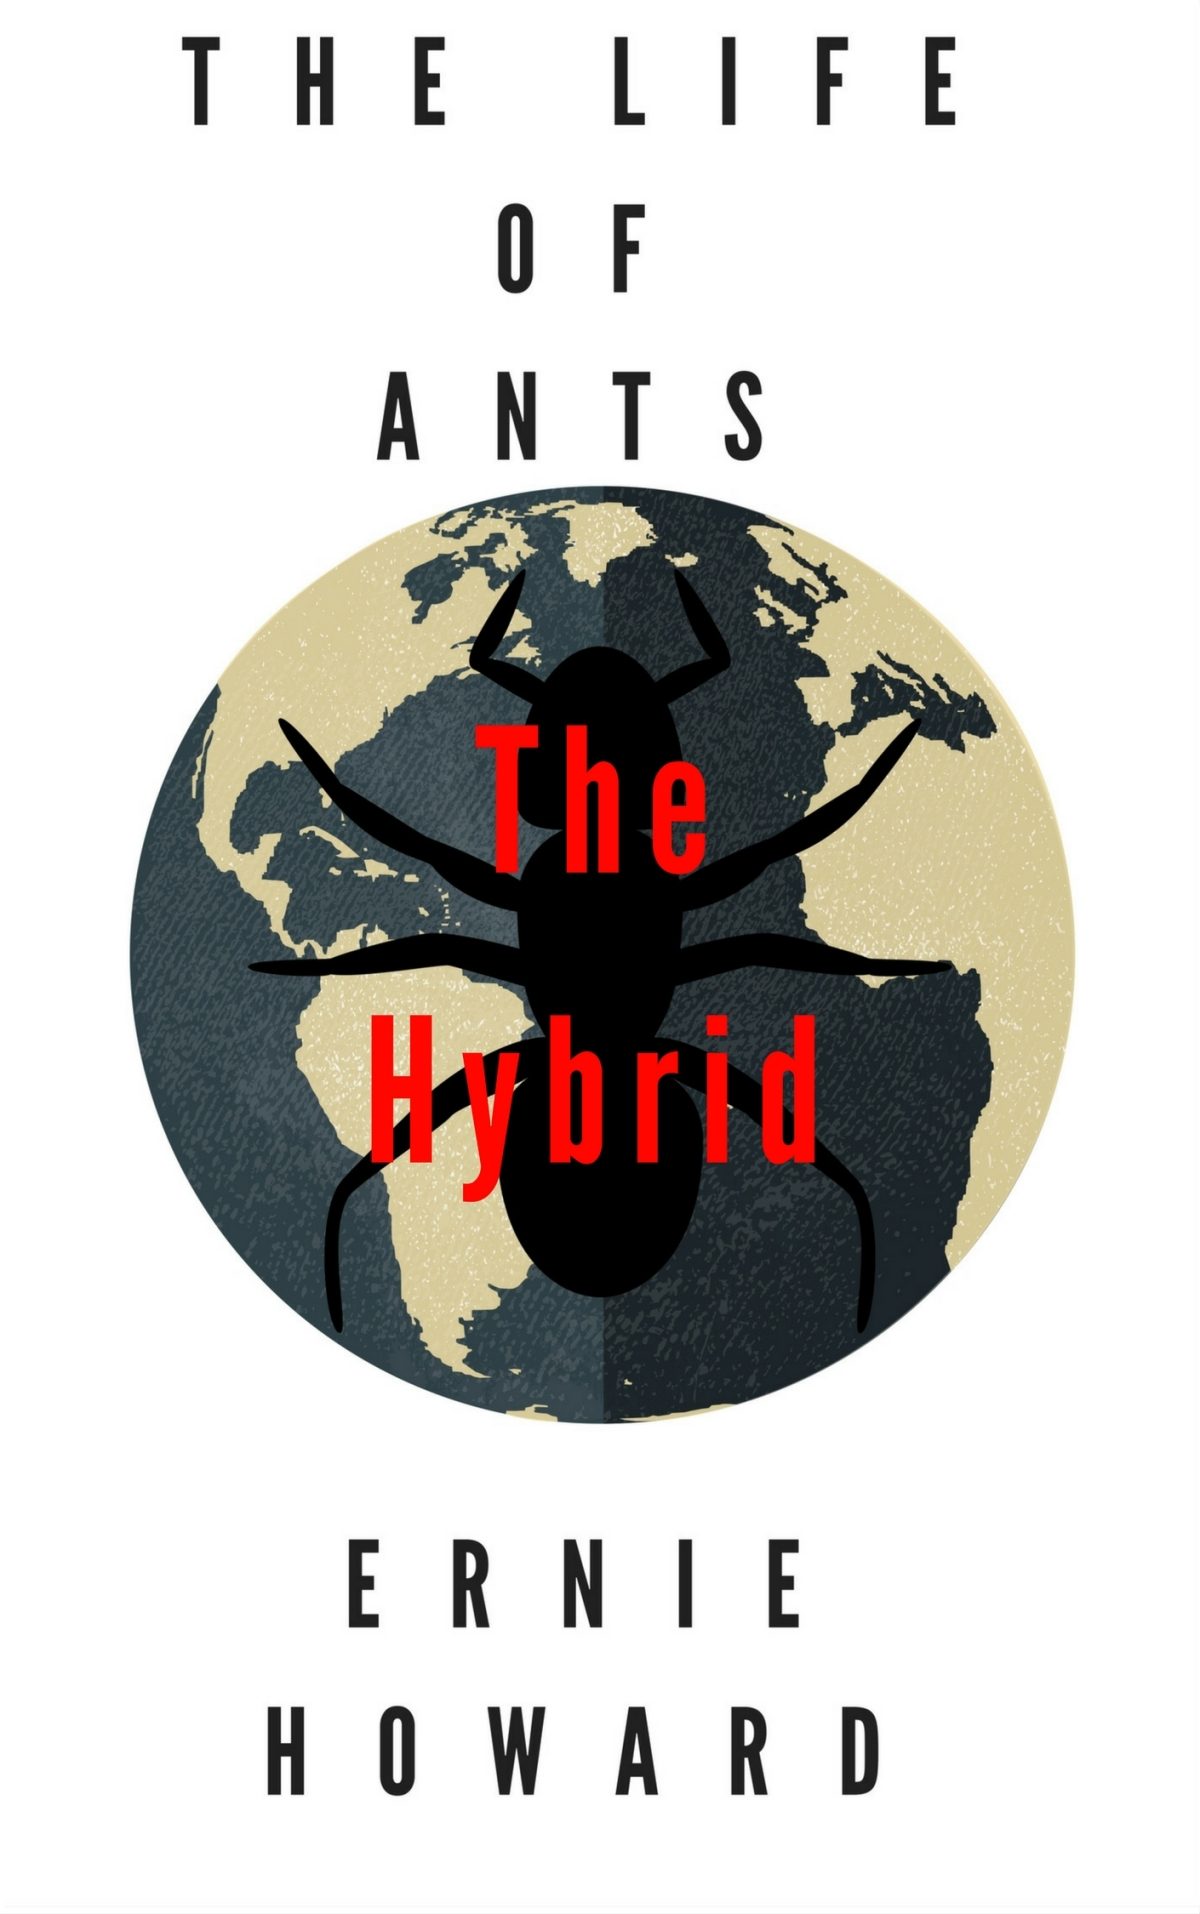 Sample from The Life of Ants, TheHybrid